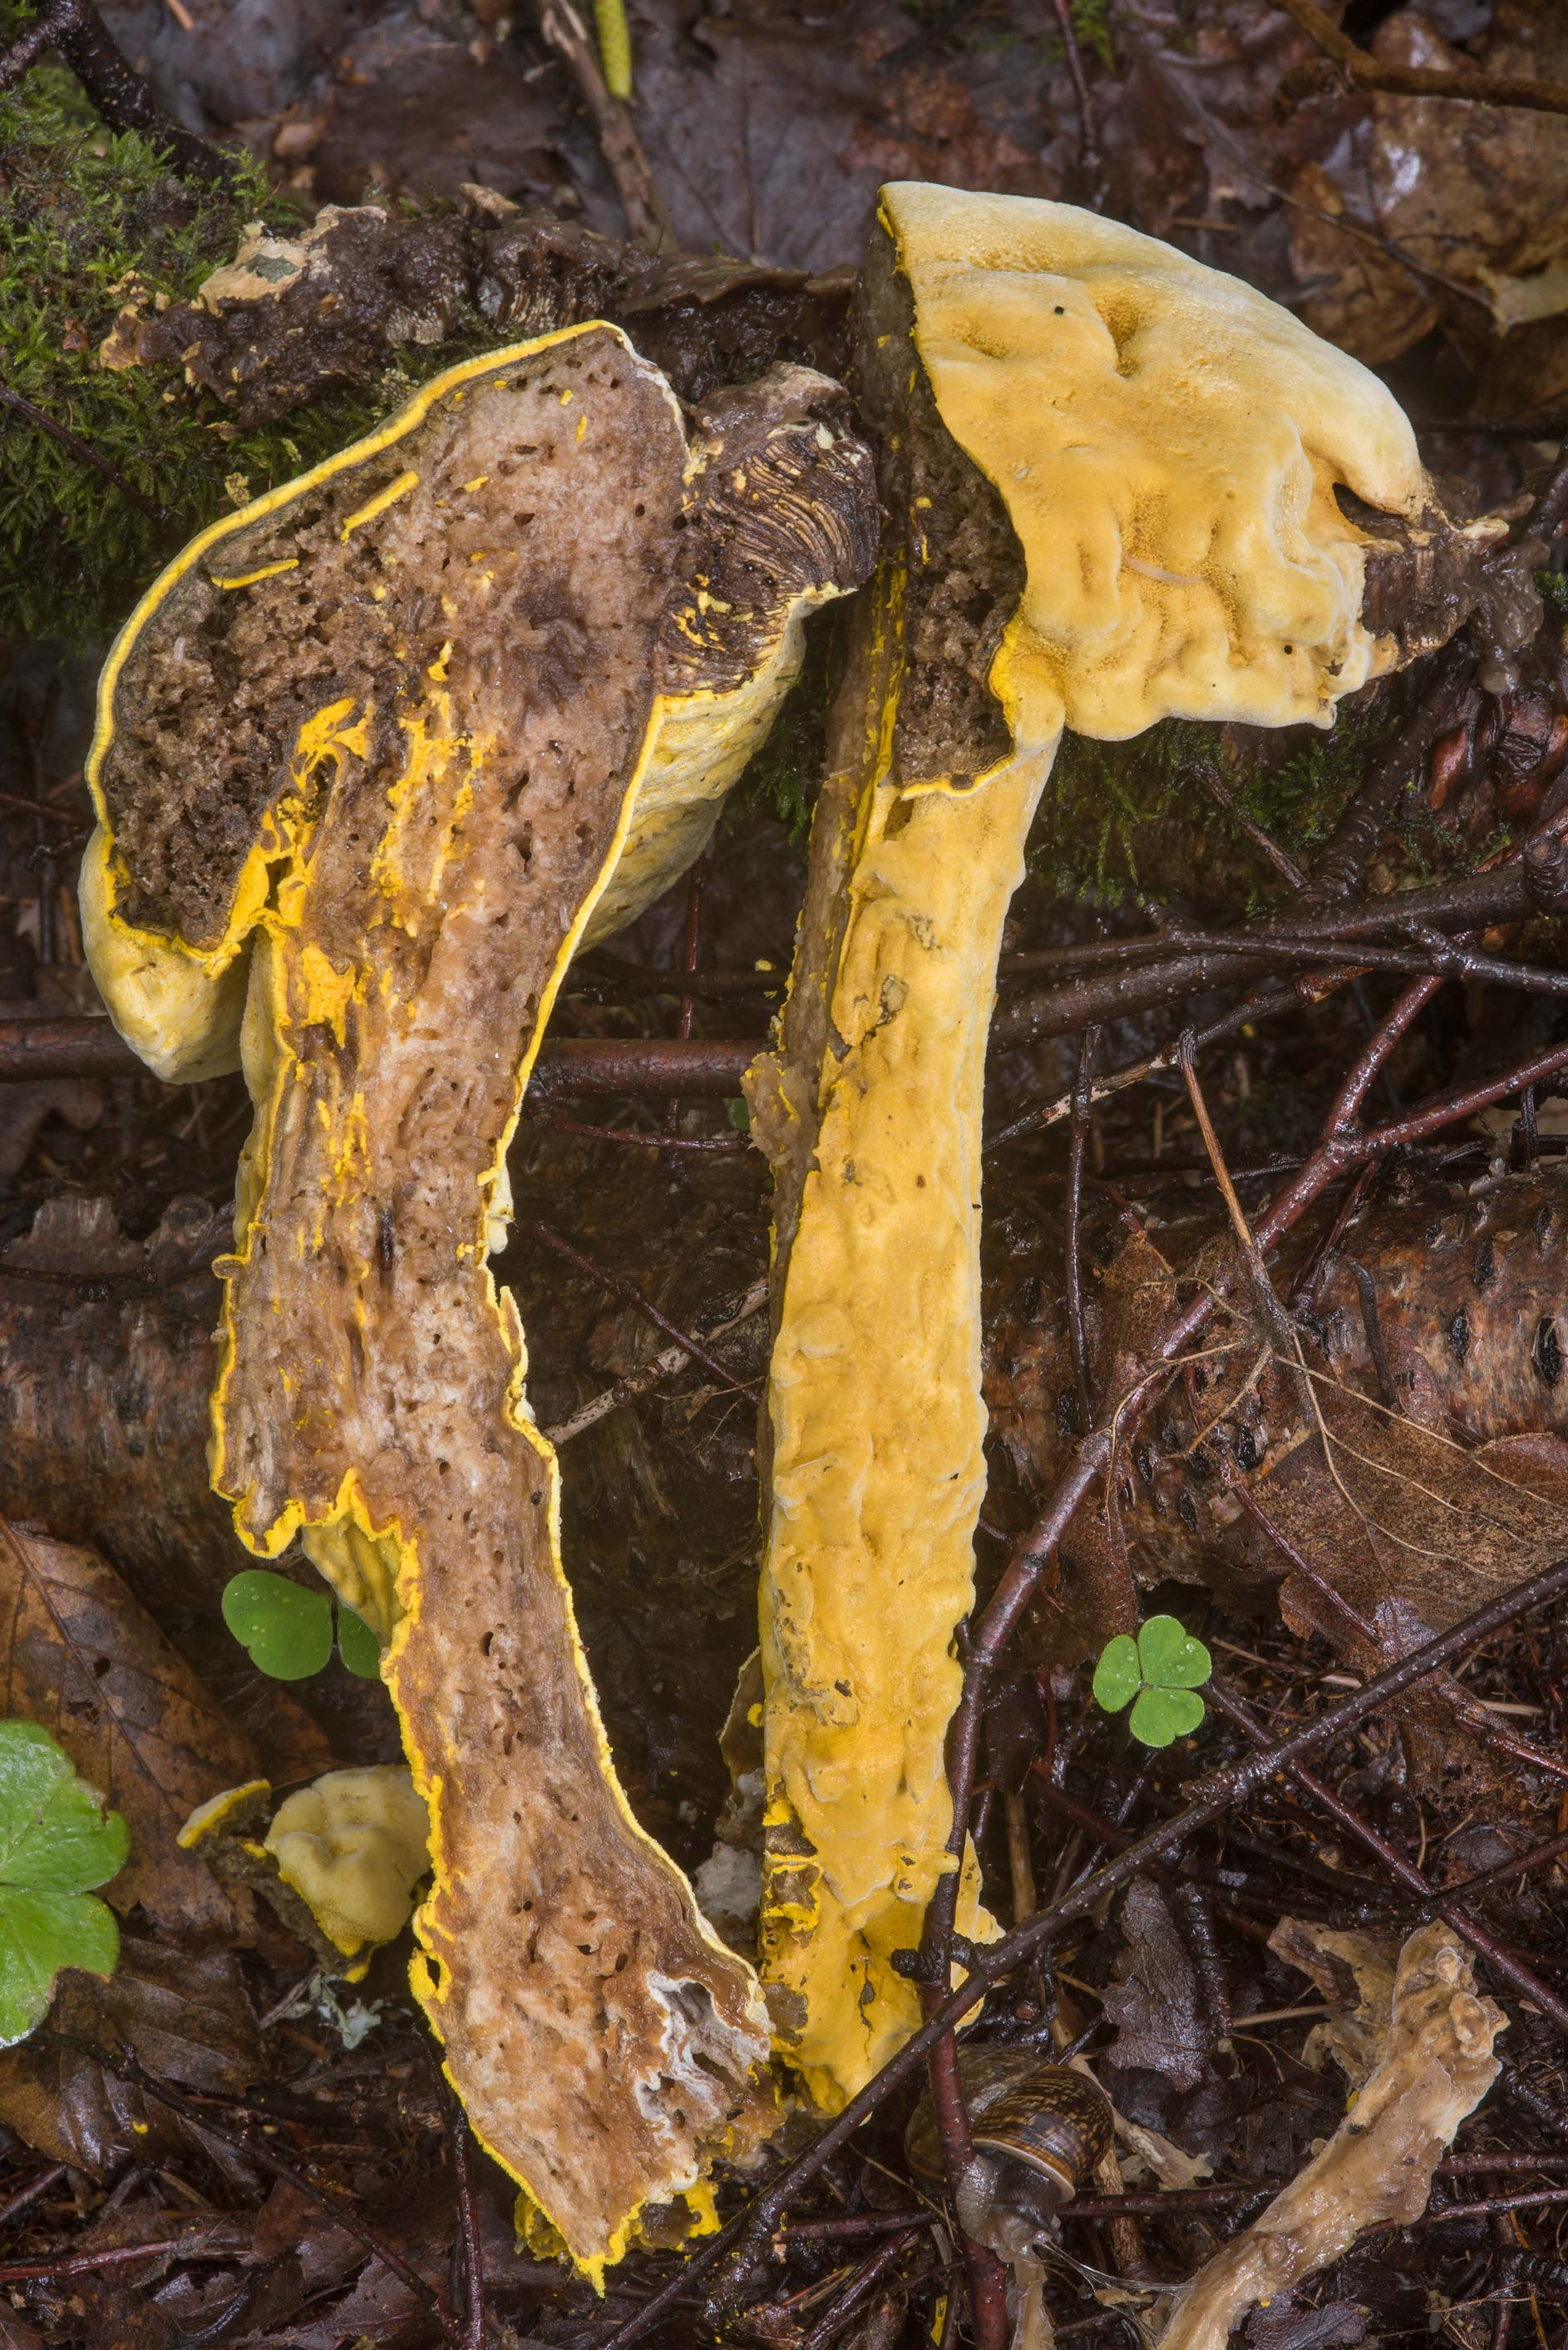 Dissected bolete with mold fungus Hypomyces...Nos. West from St.Petersburg, Russia